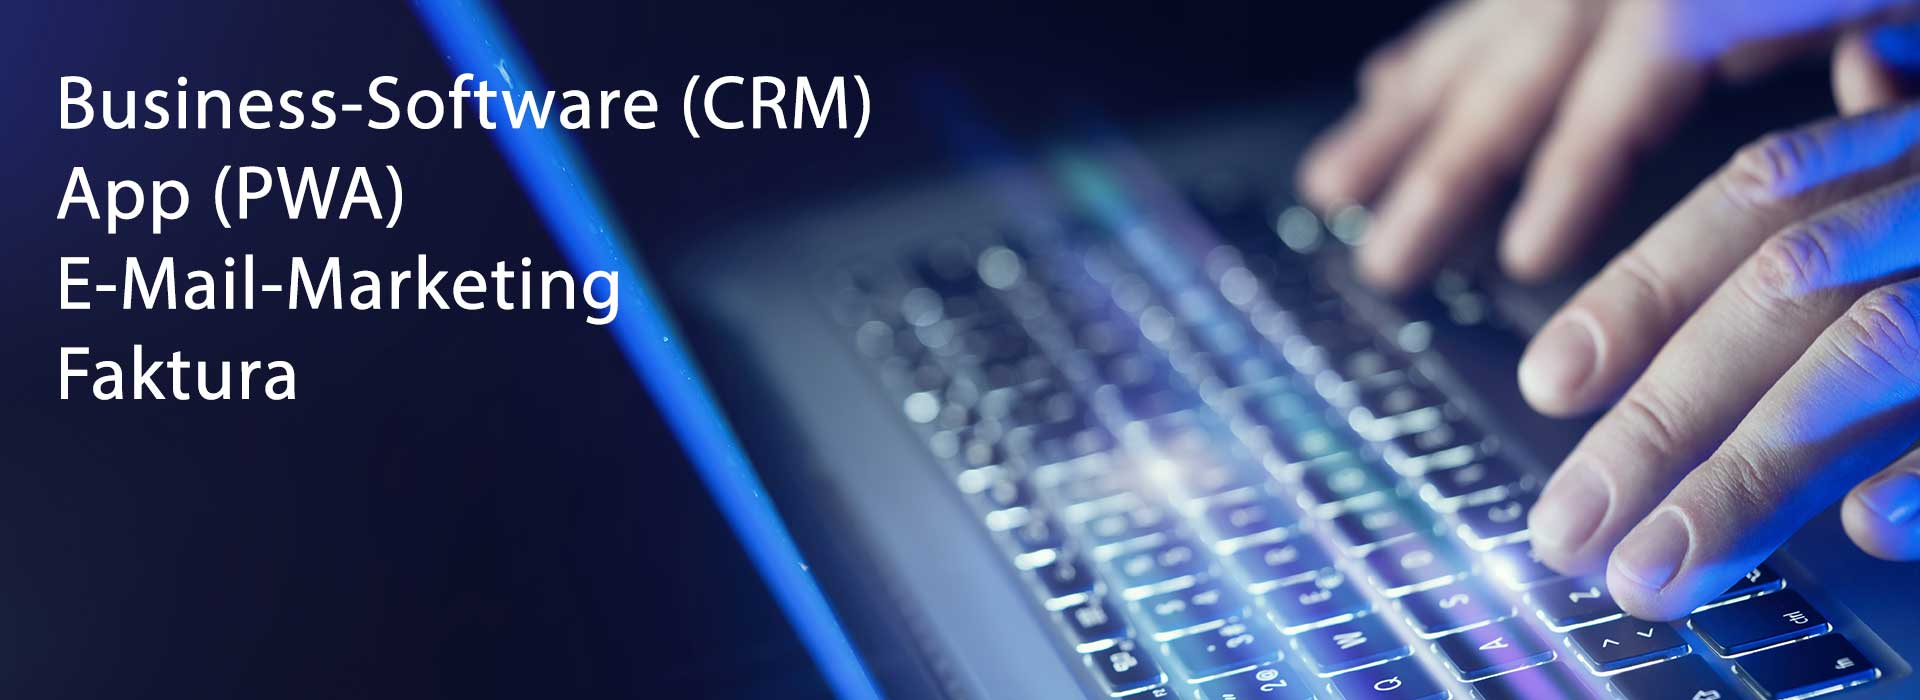 CRM - Customer Relationship Management mit der Worldsoft WBS - Internet Beratung Spengler - Webmaster und Webdesign Frankfurt Main